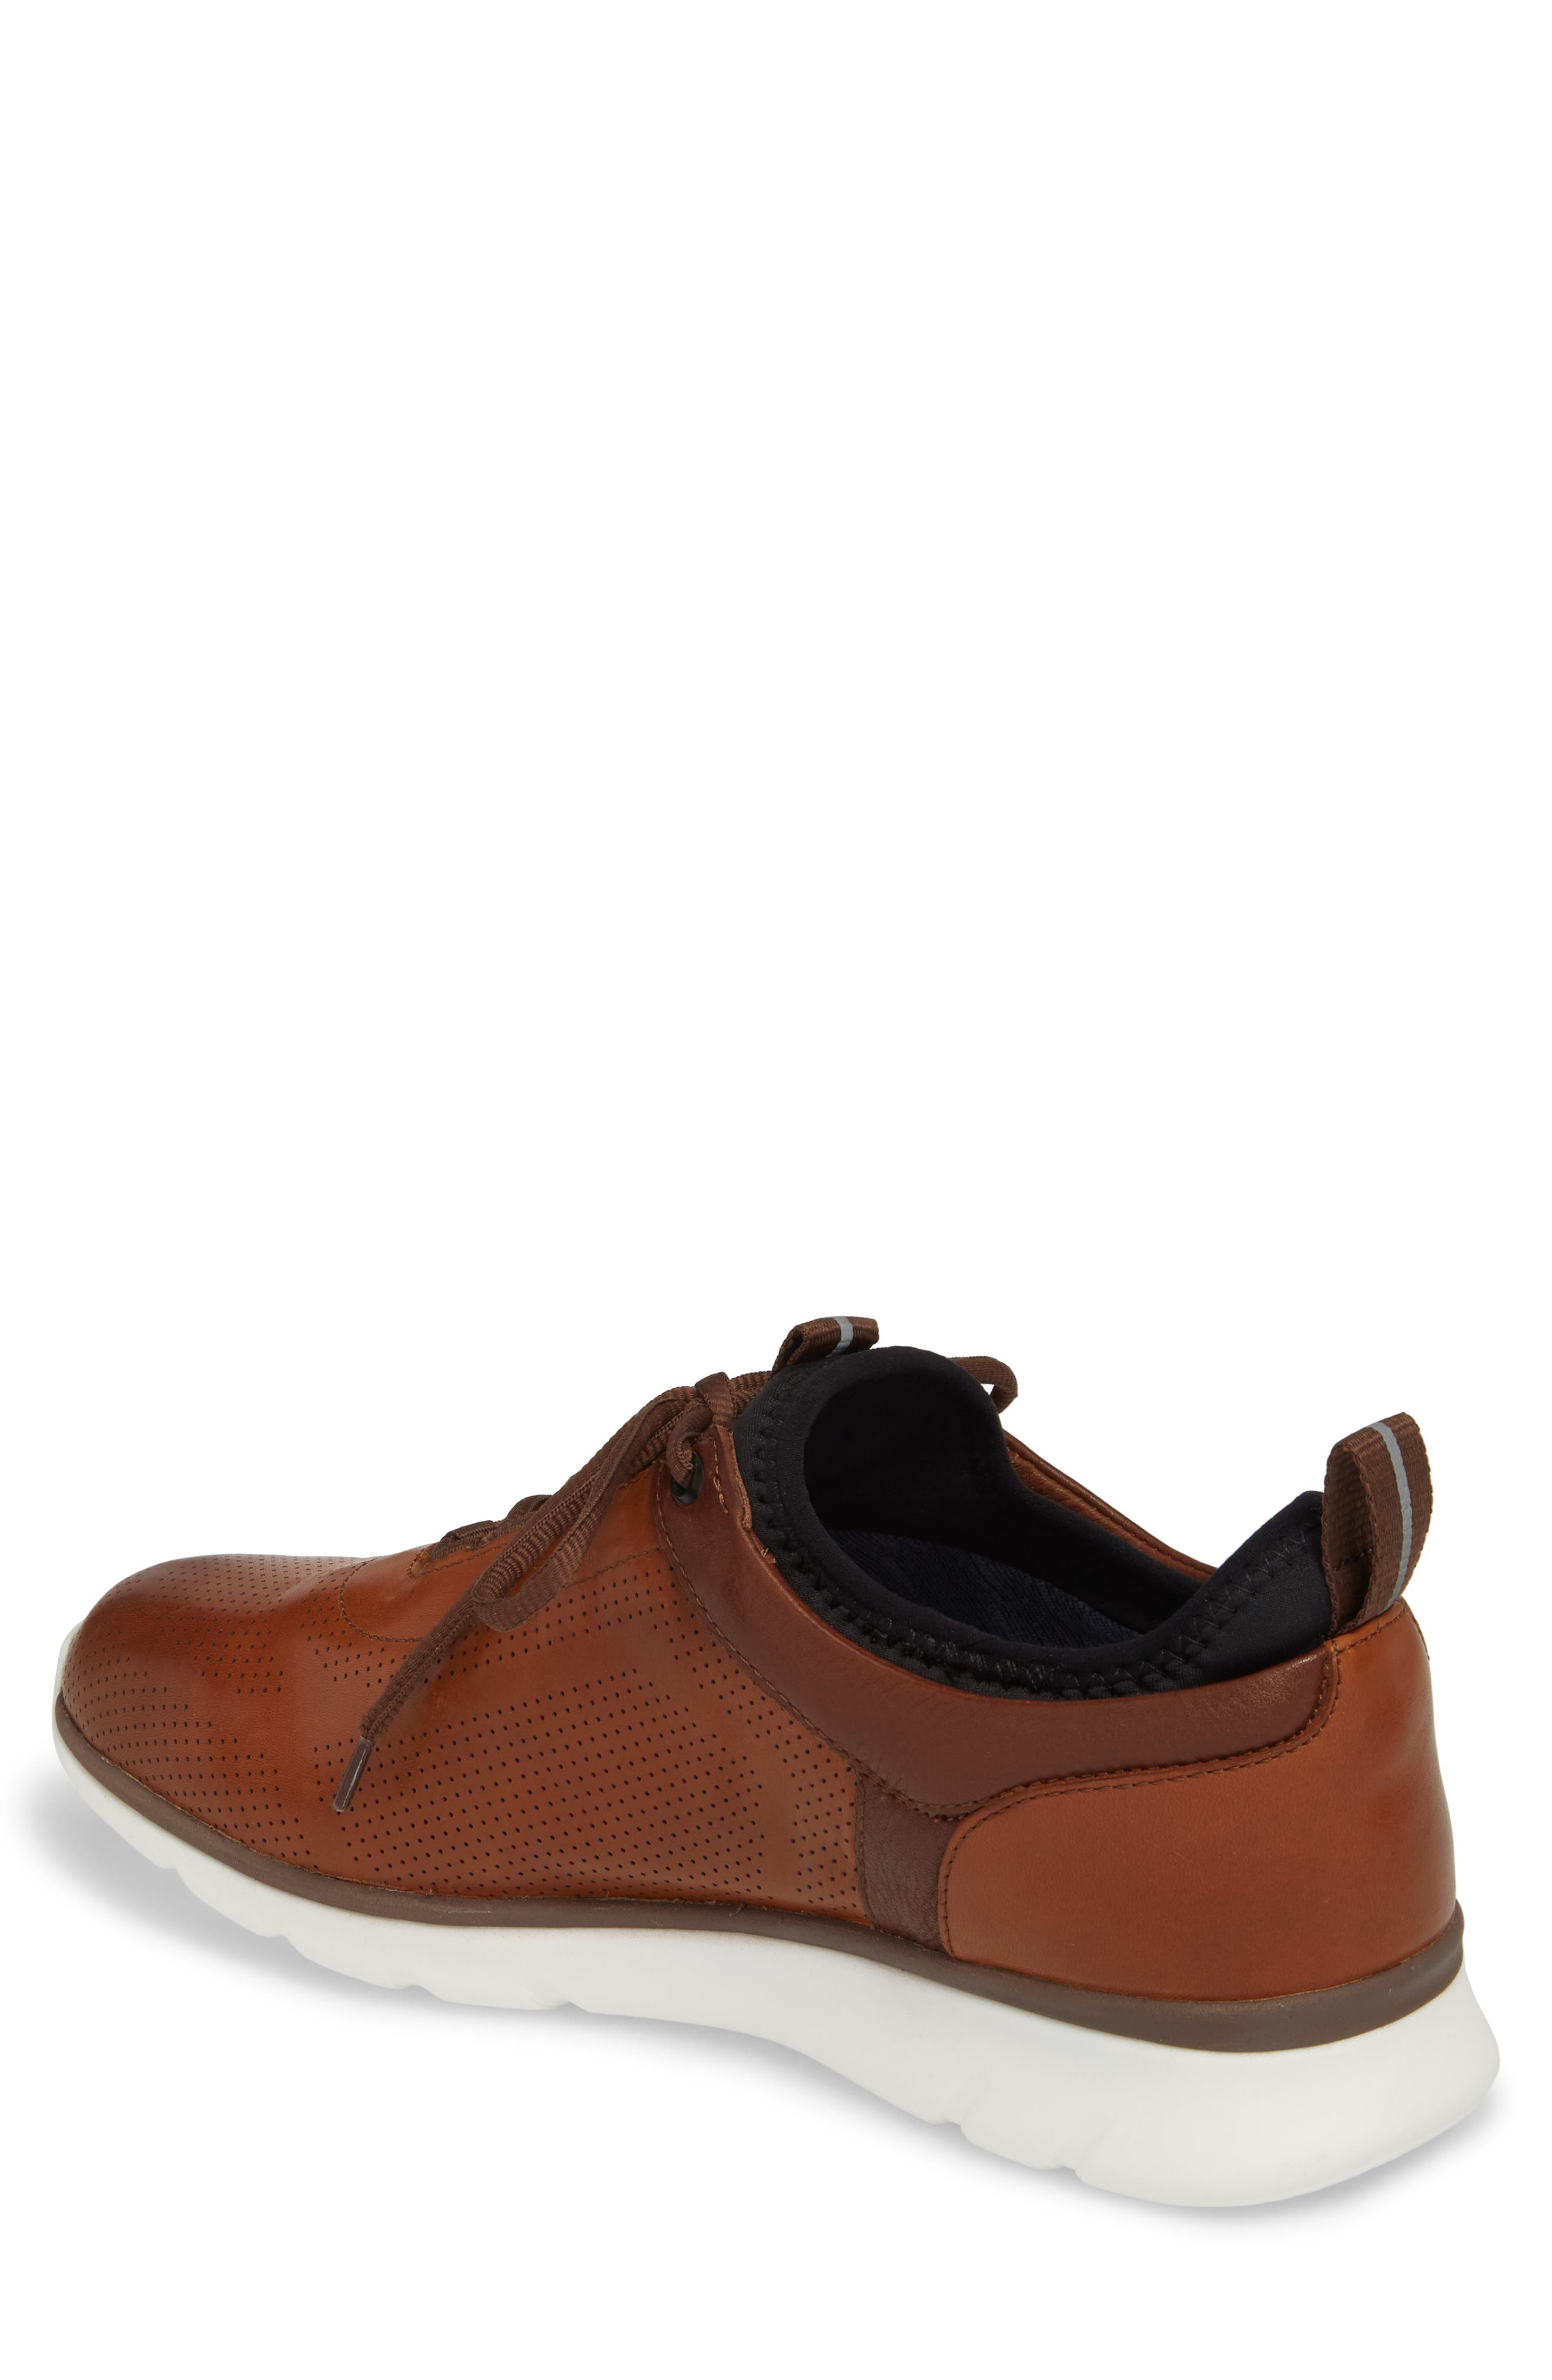 Prentiss XC4<sup>®</sup> Waterproof Sneaker,                             Alternate thumbnail 2, color,                             Mahogany Leather